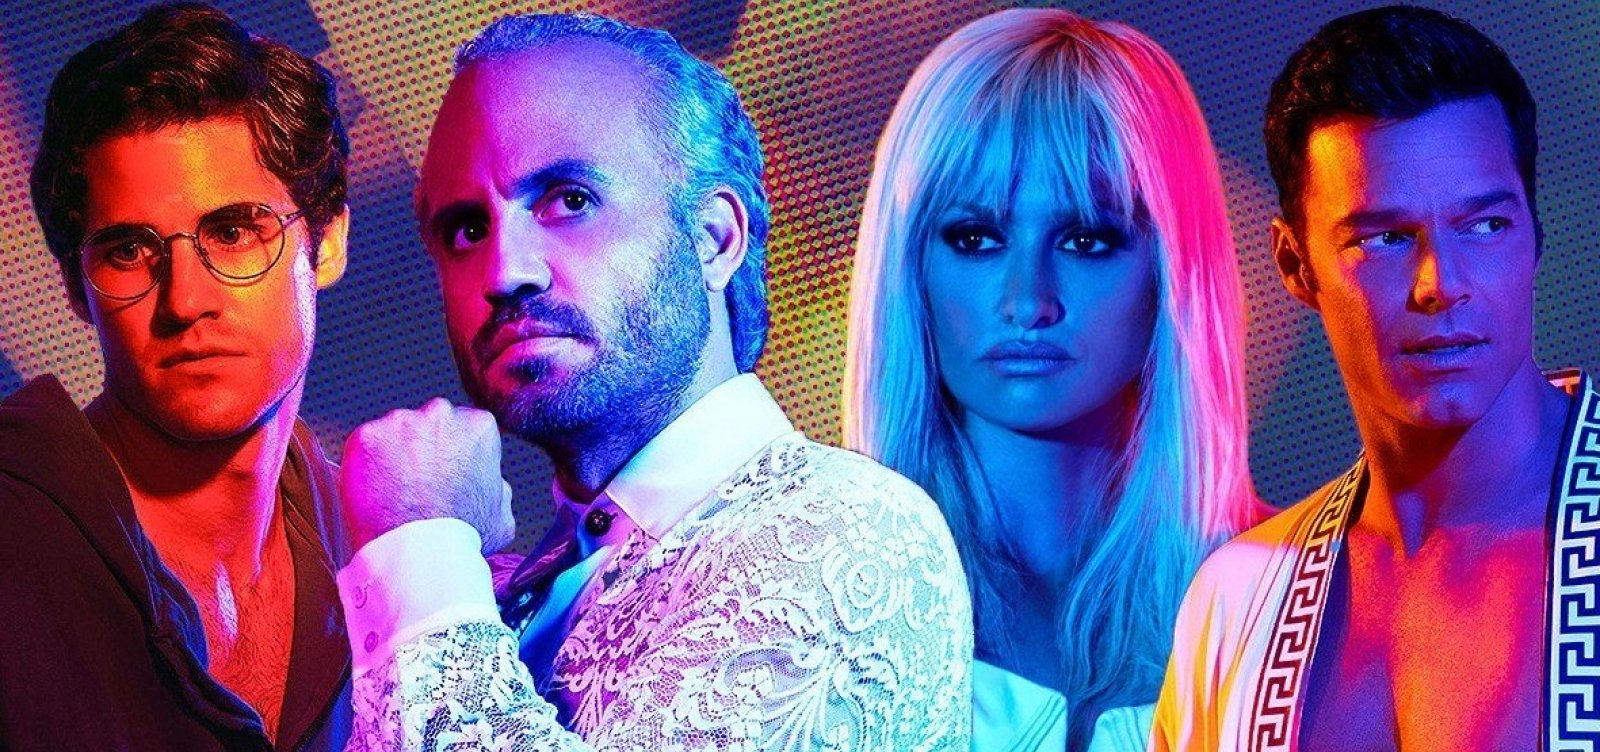 [The Assassination of Gianni Versace: American Crime Story]